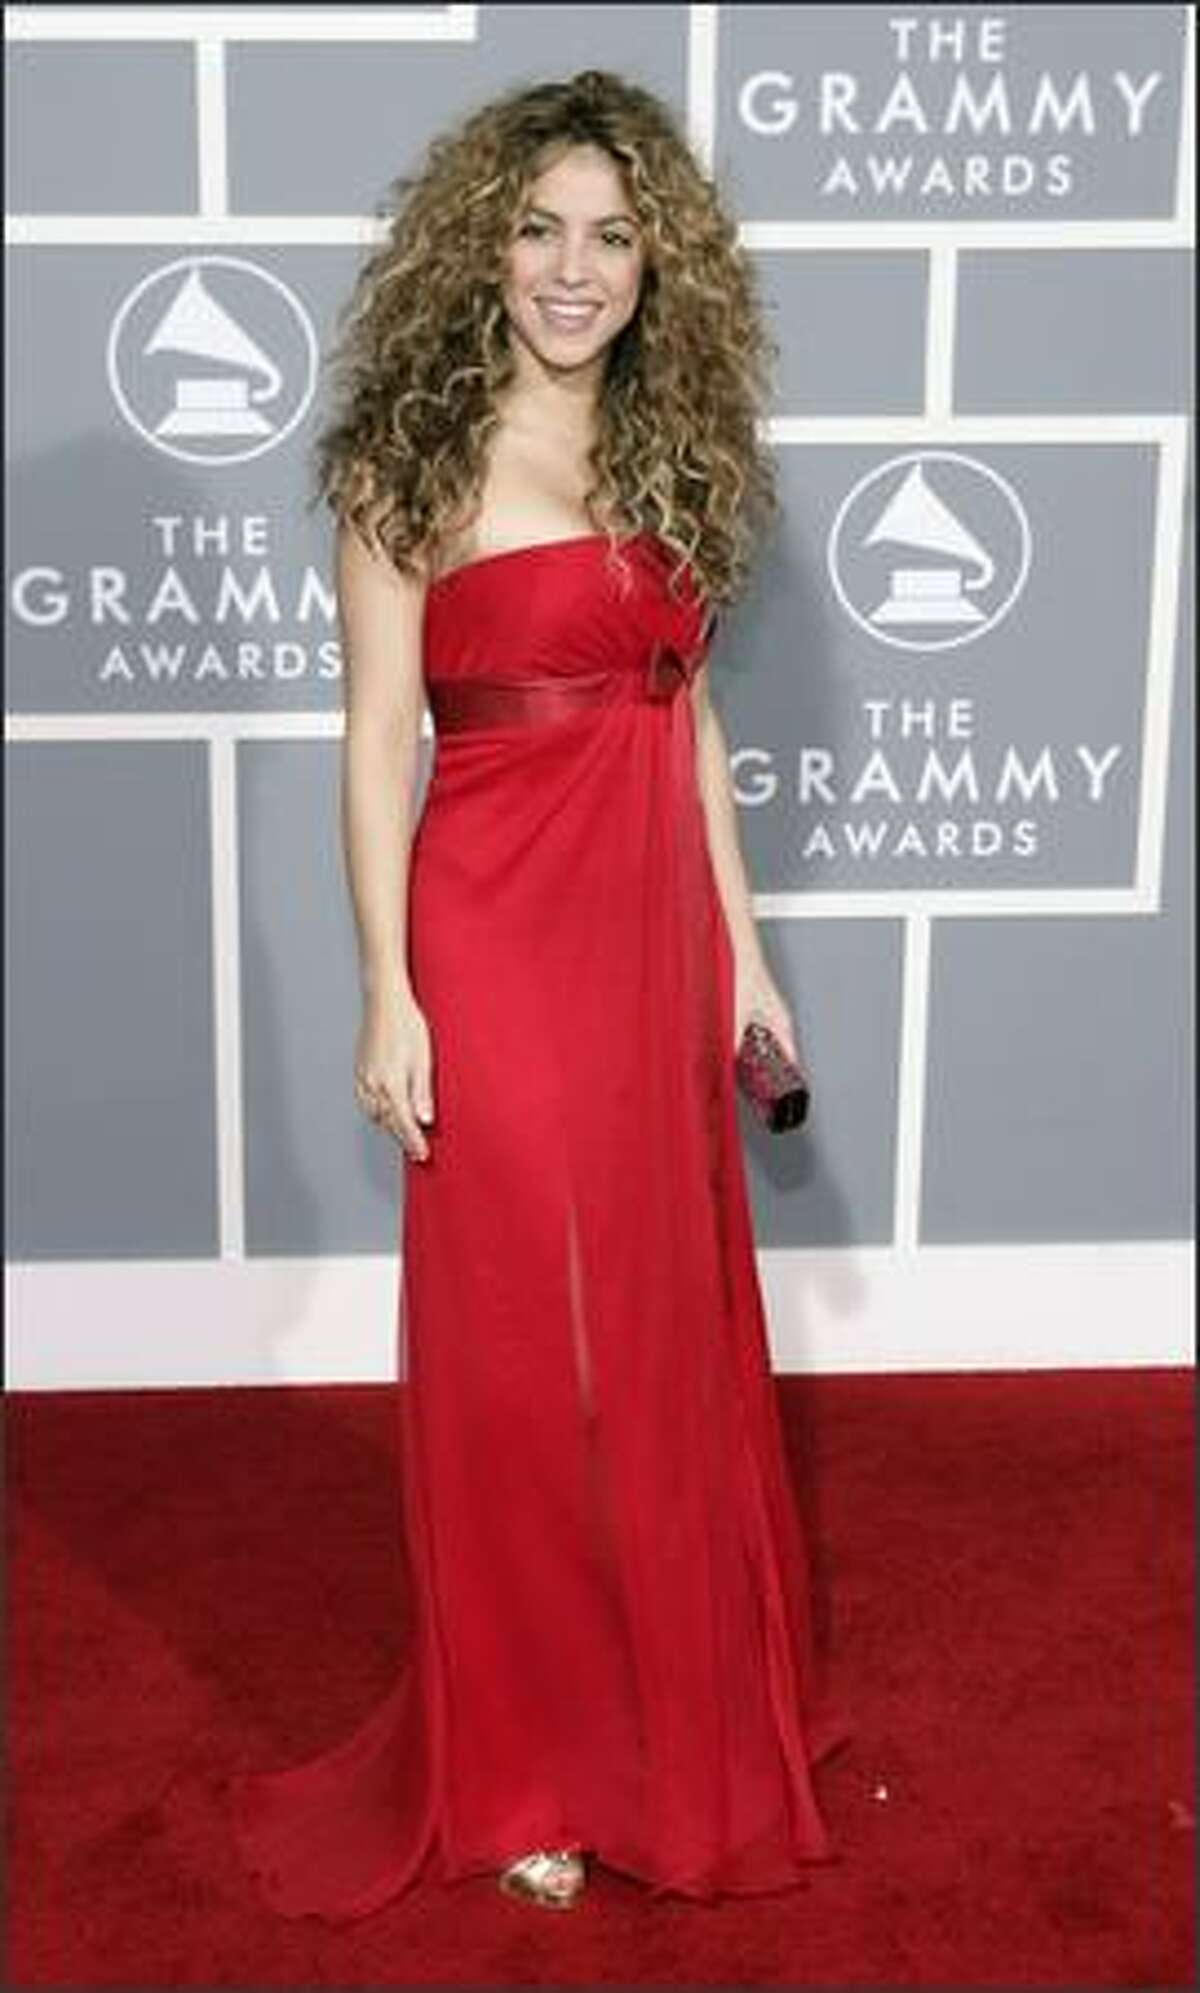 Shakira arrives for the 49th Annual Grammy Awards. (AP Photo/Matt Sayles)